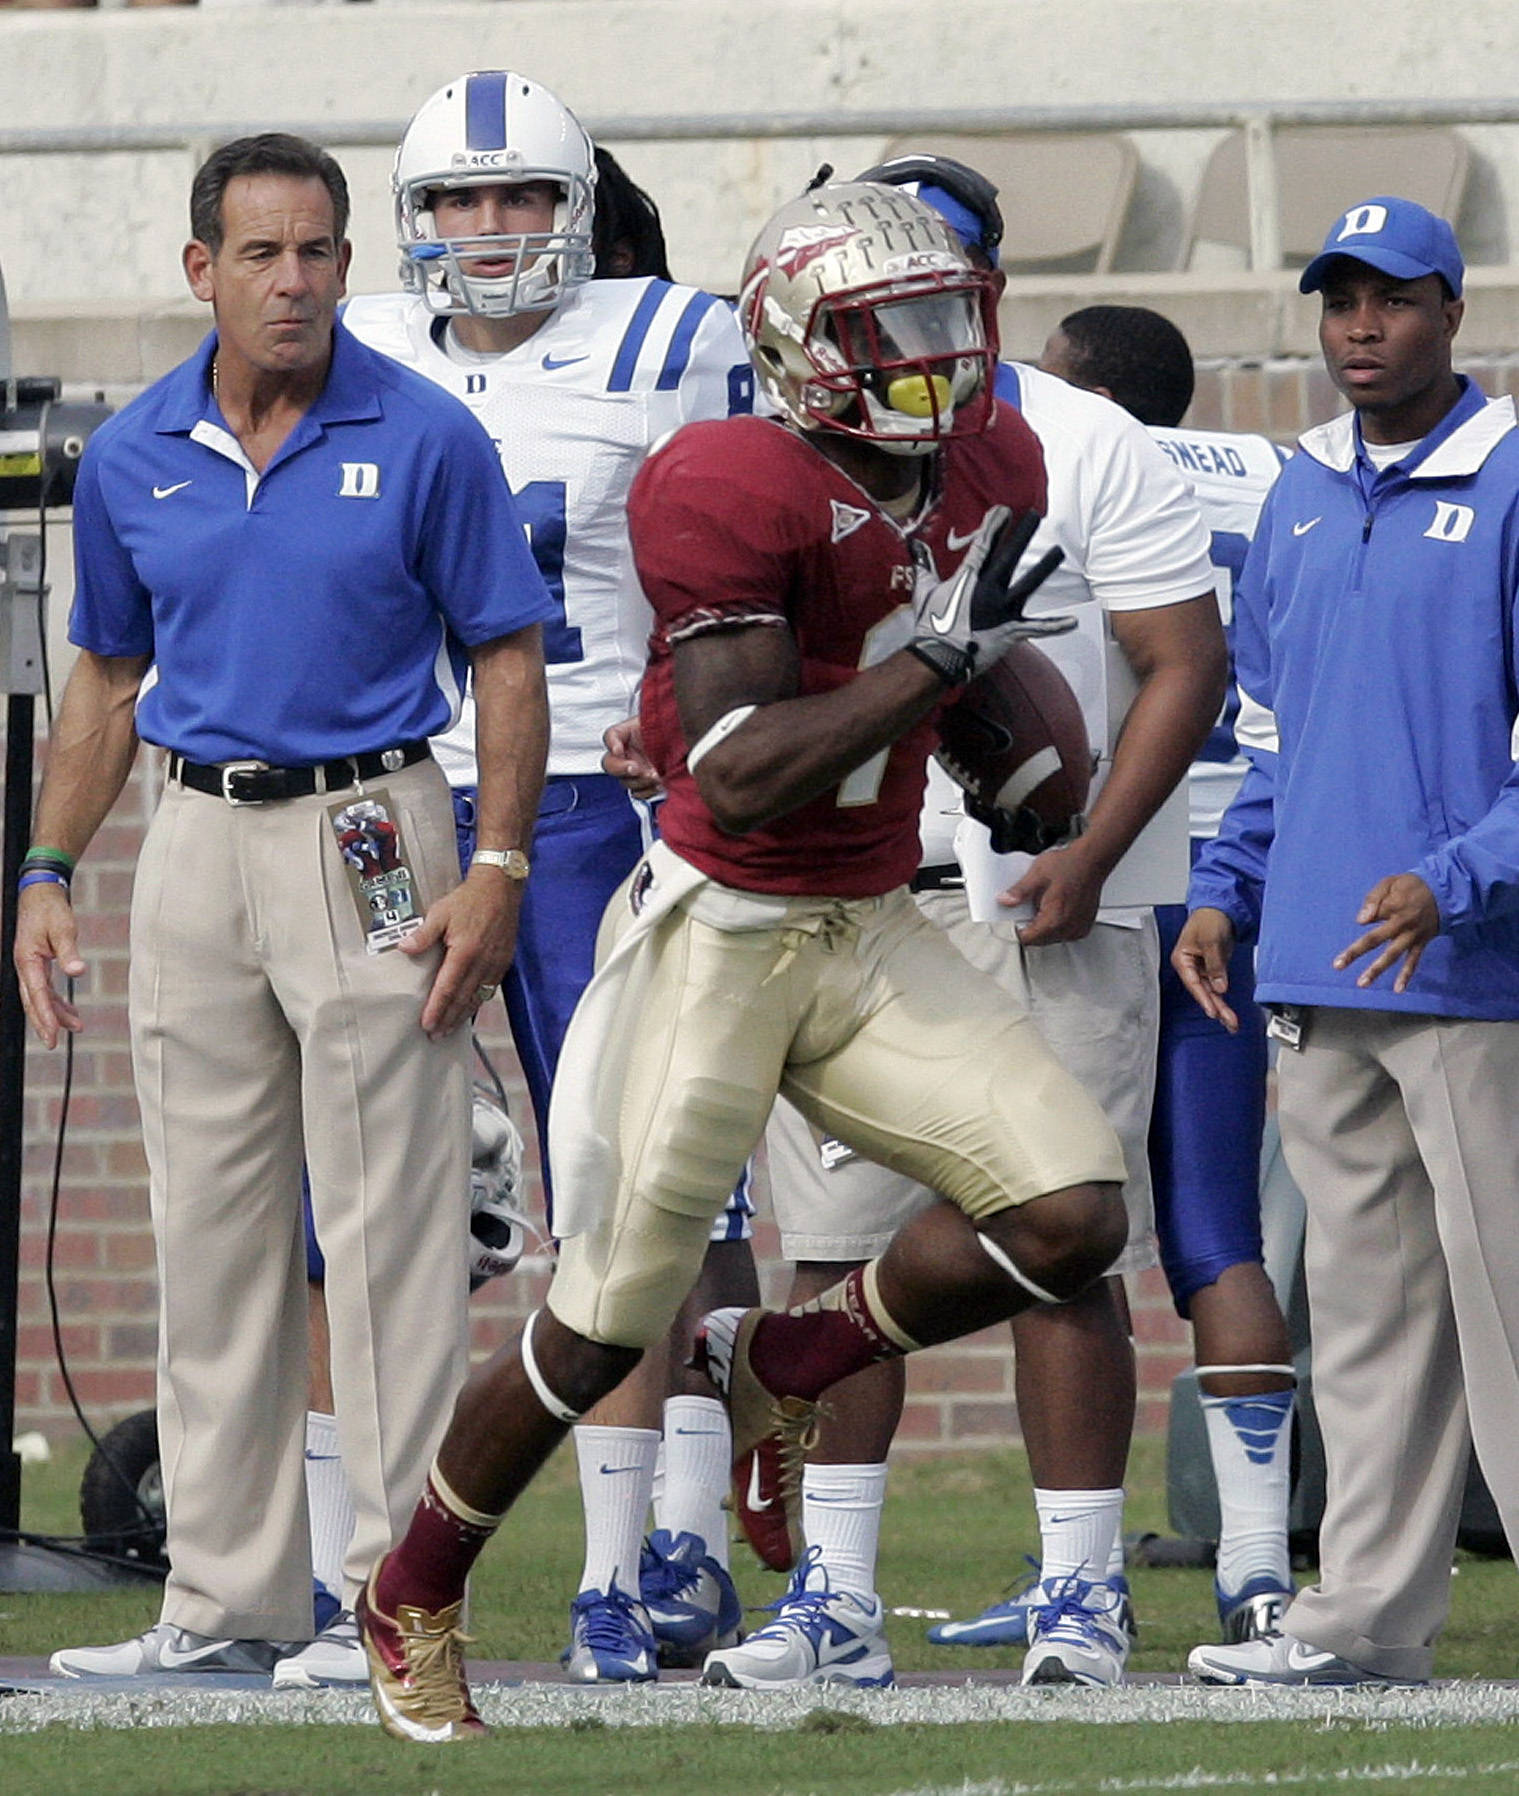 Duke's bench watches Florida State's Tyler Hunter run back a punt for a touchdown in the first quarter. (AP Photo/Steve Cannon)